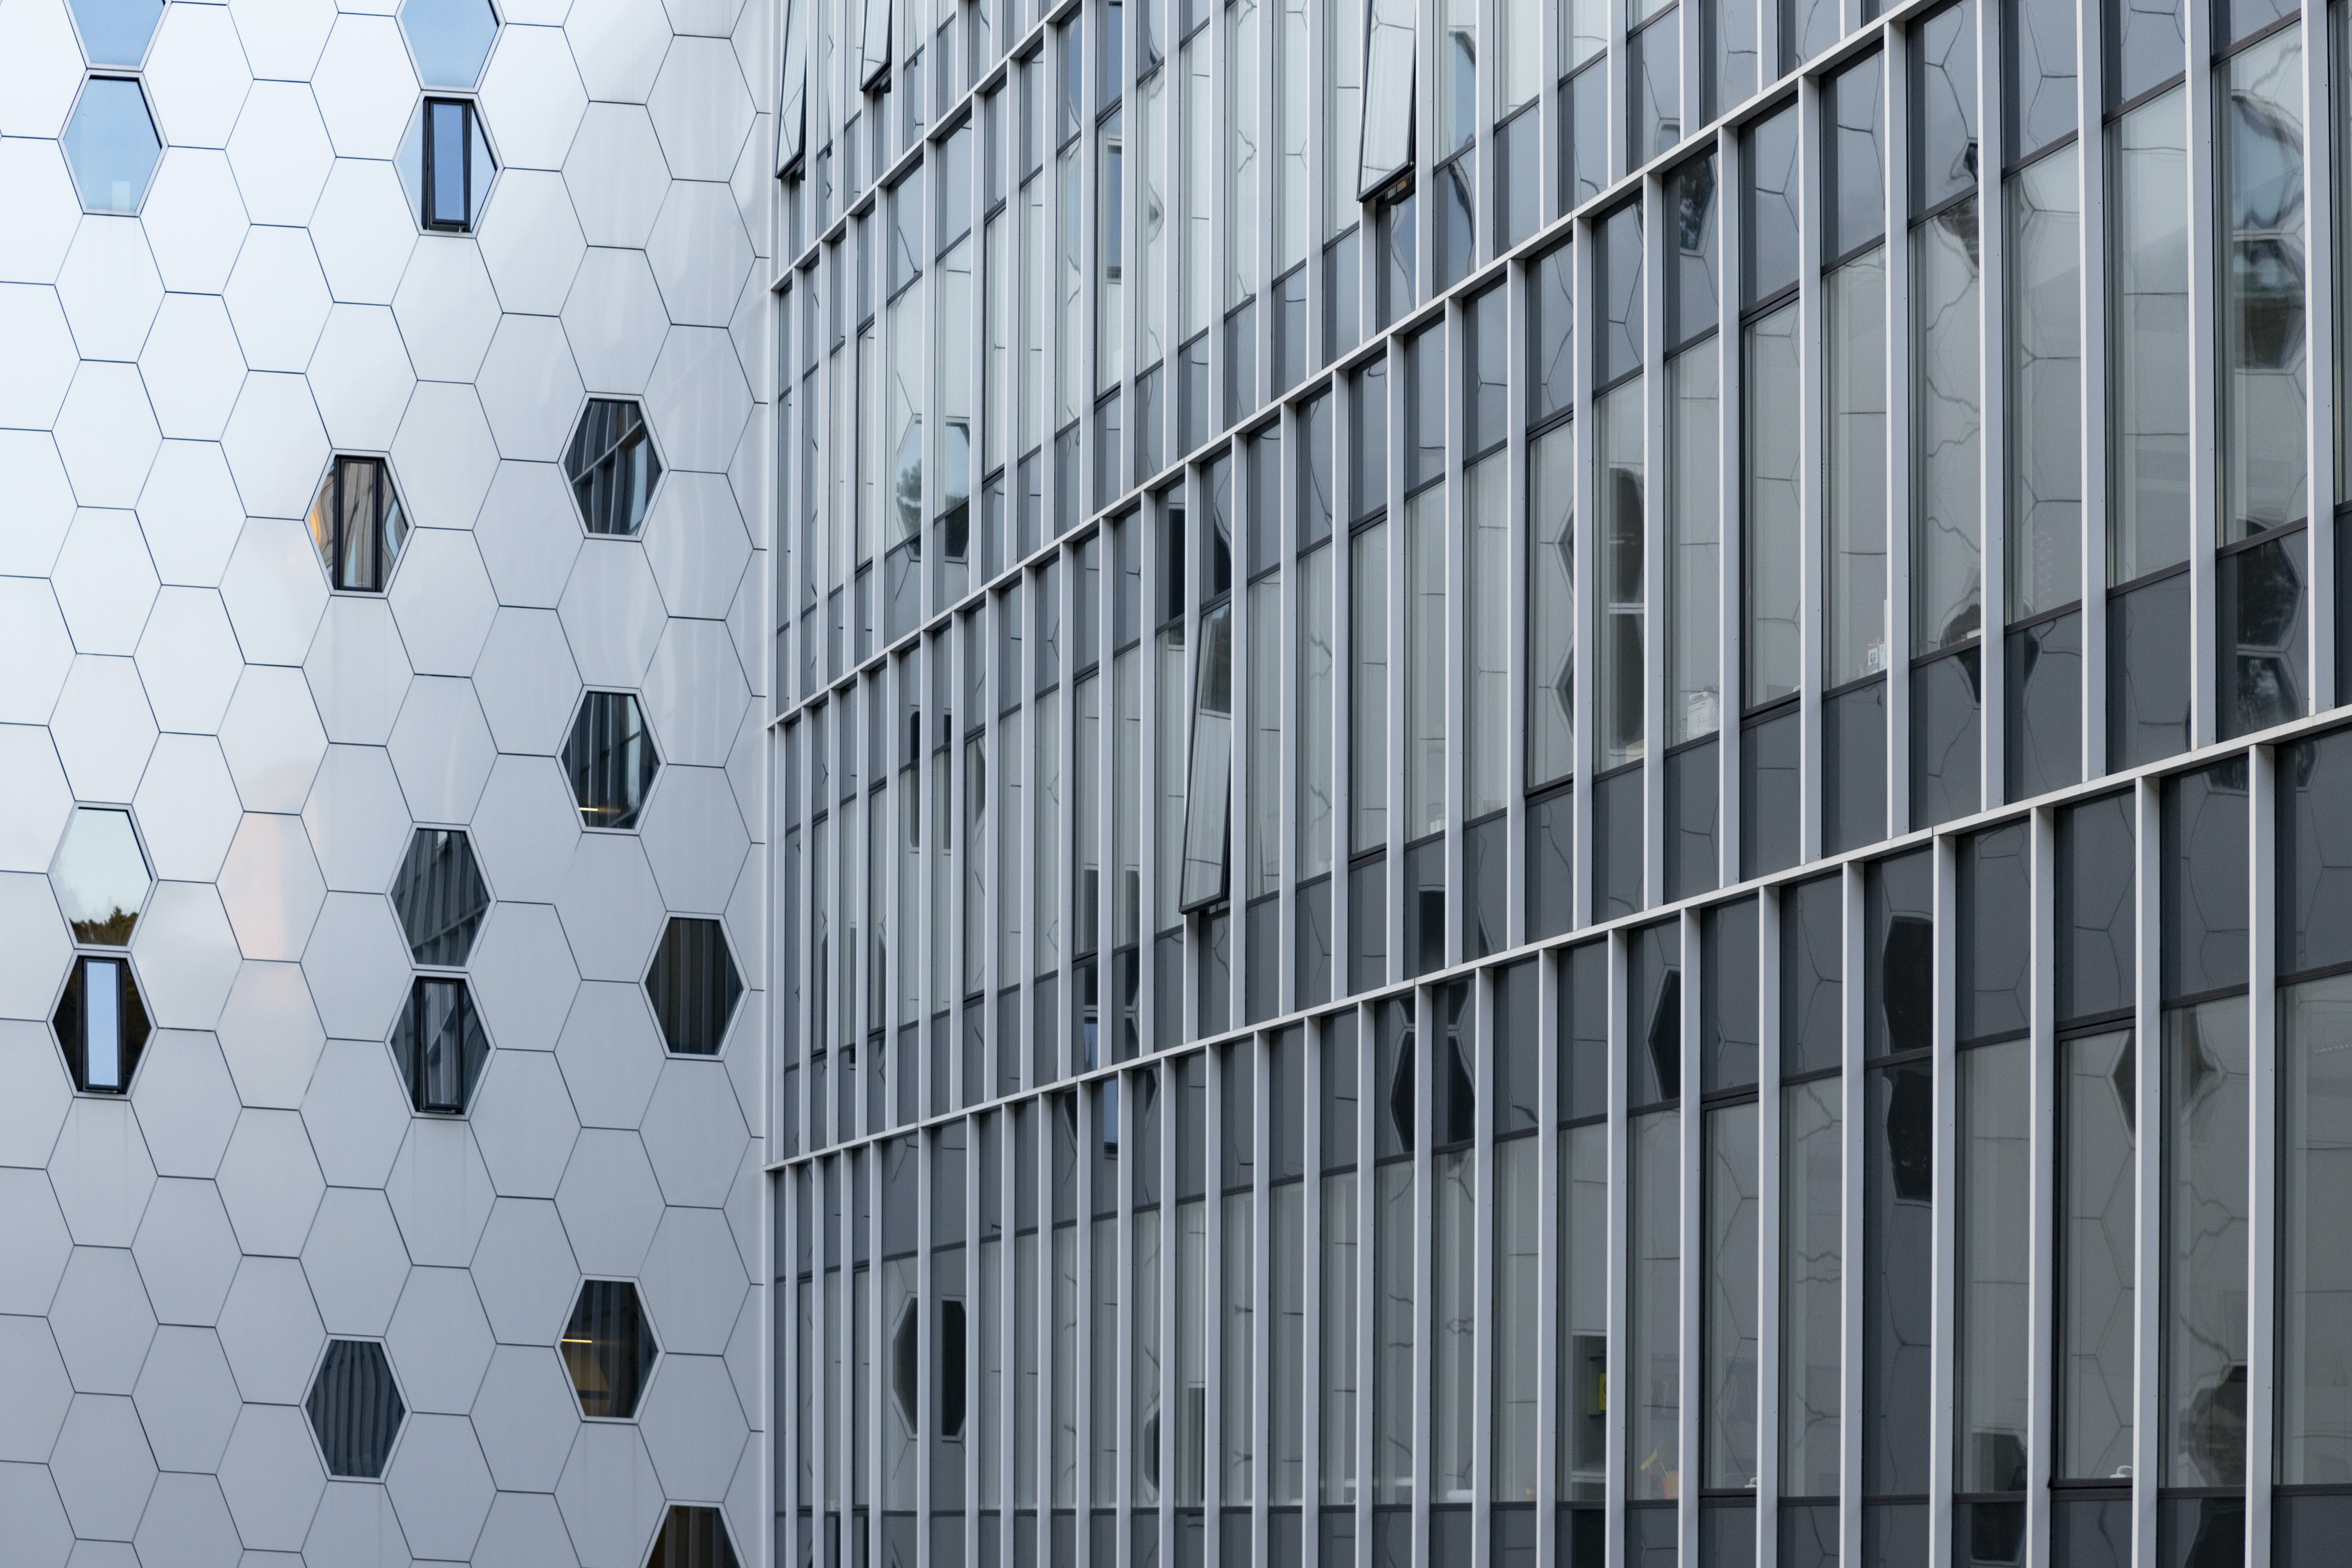 Free stock photo of architecture, windows, tall, reflections